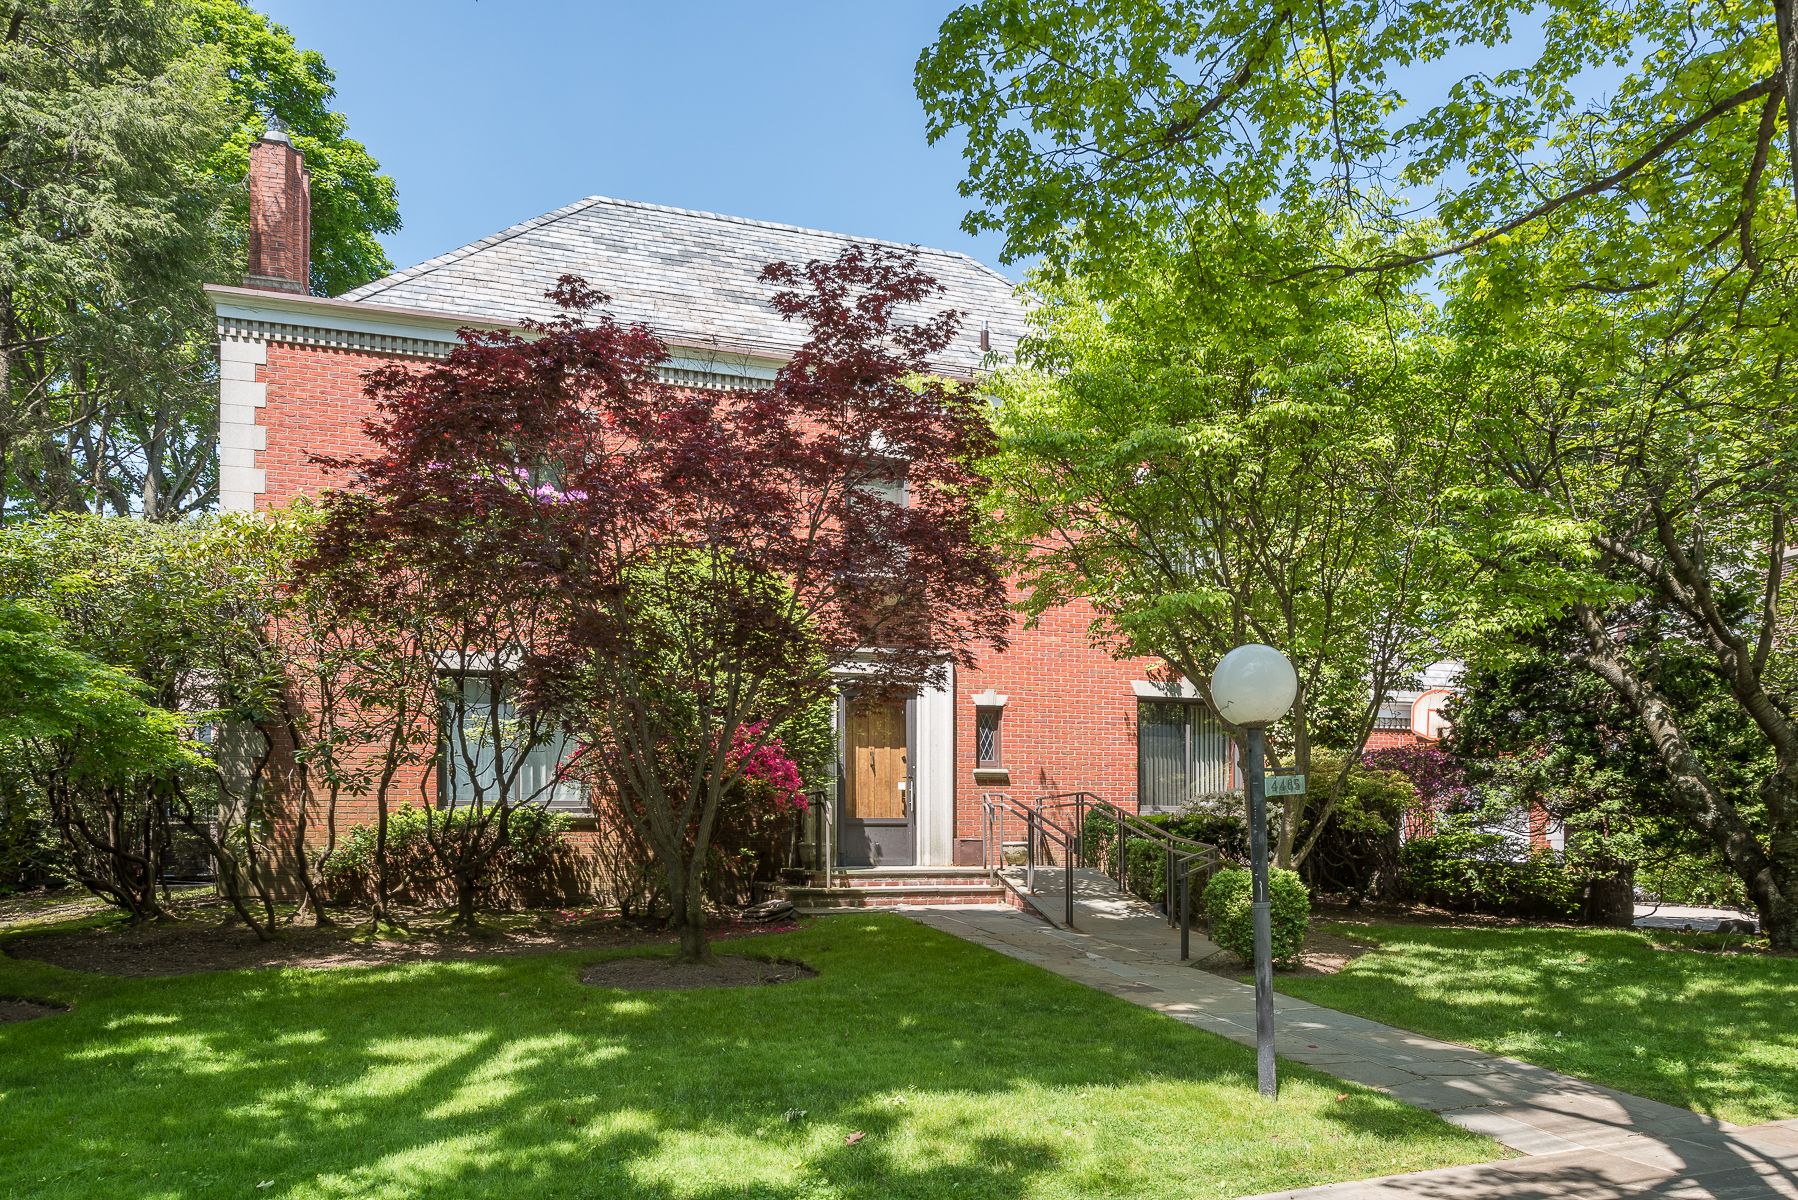 Single Family Home for Sale at Two Extraordinary Fieldston Houses 4485 Fieldston Road Bronx, New York 10471 United States